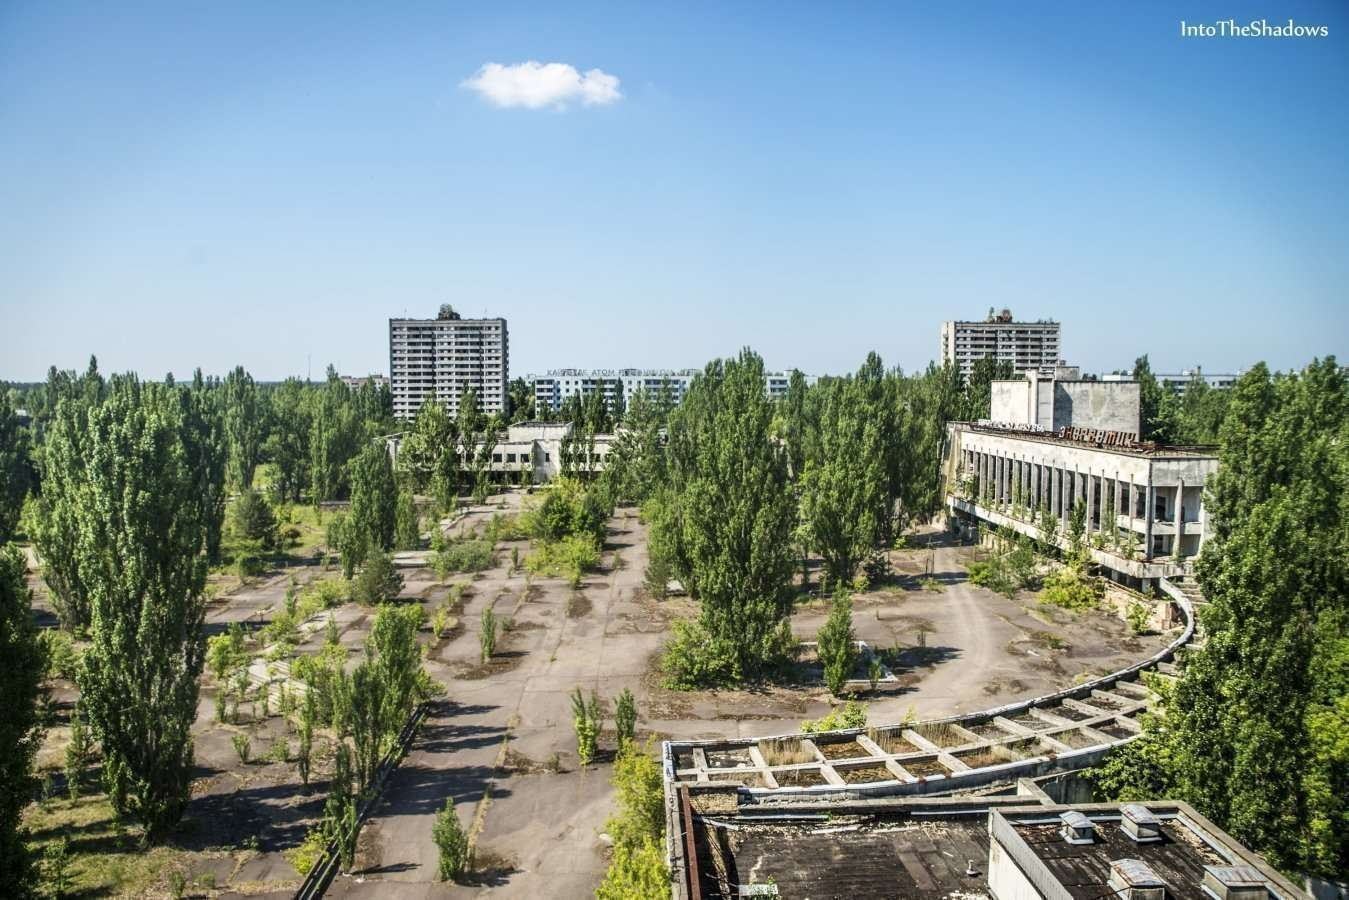 Chernobyl and Pripyat zone trip to Ukraine :: Information, photos